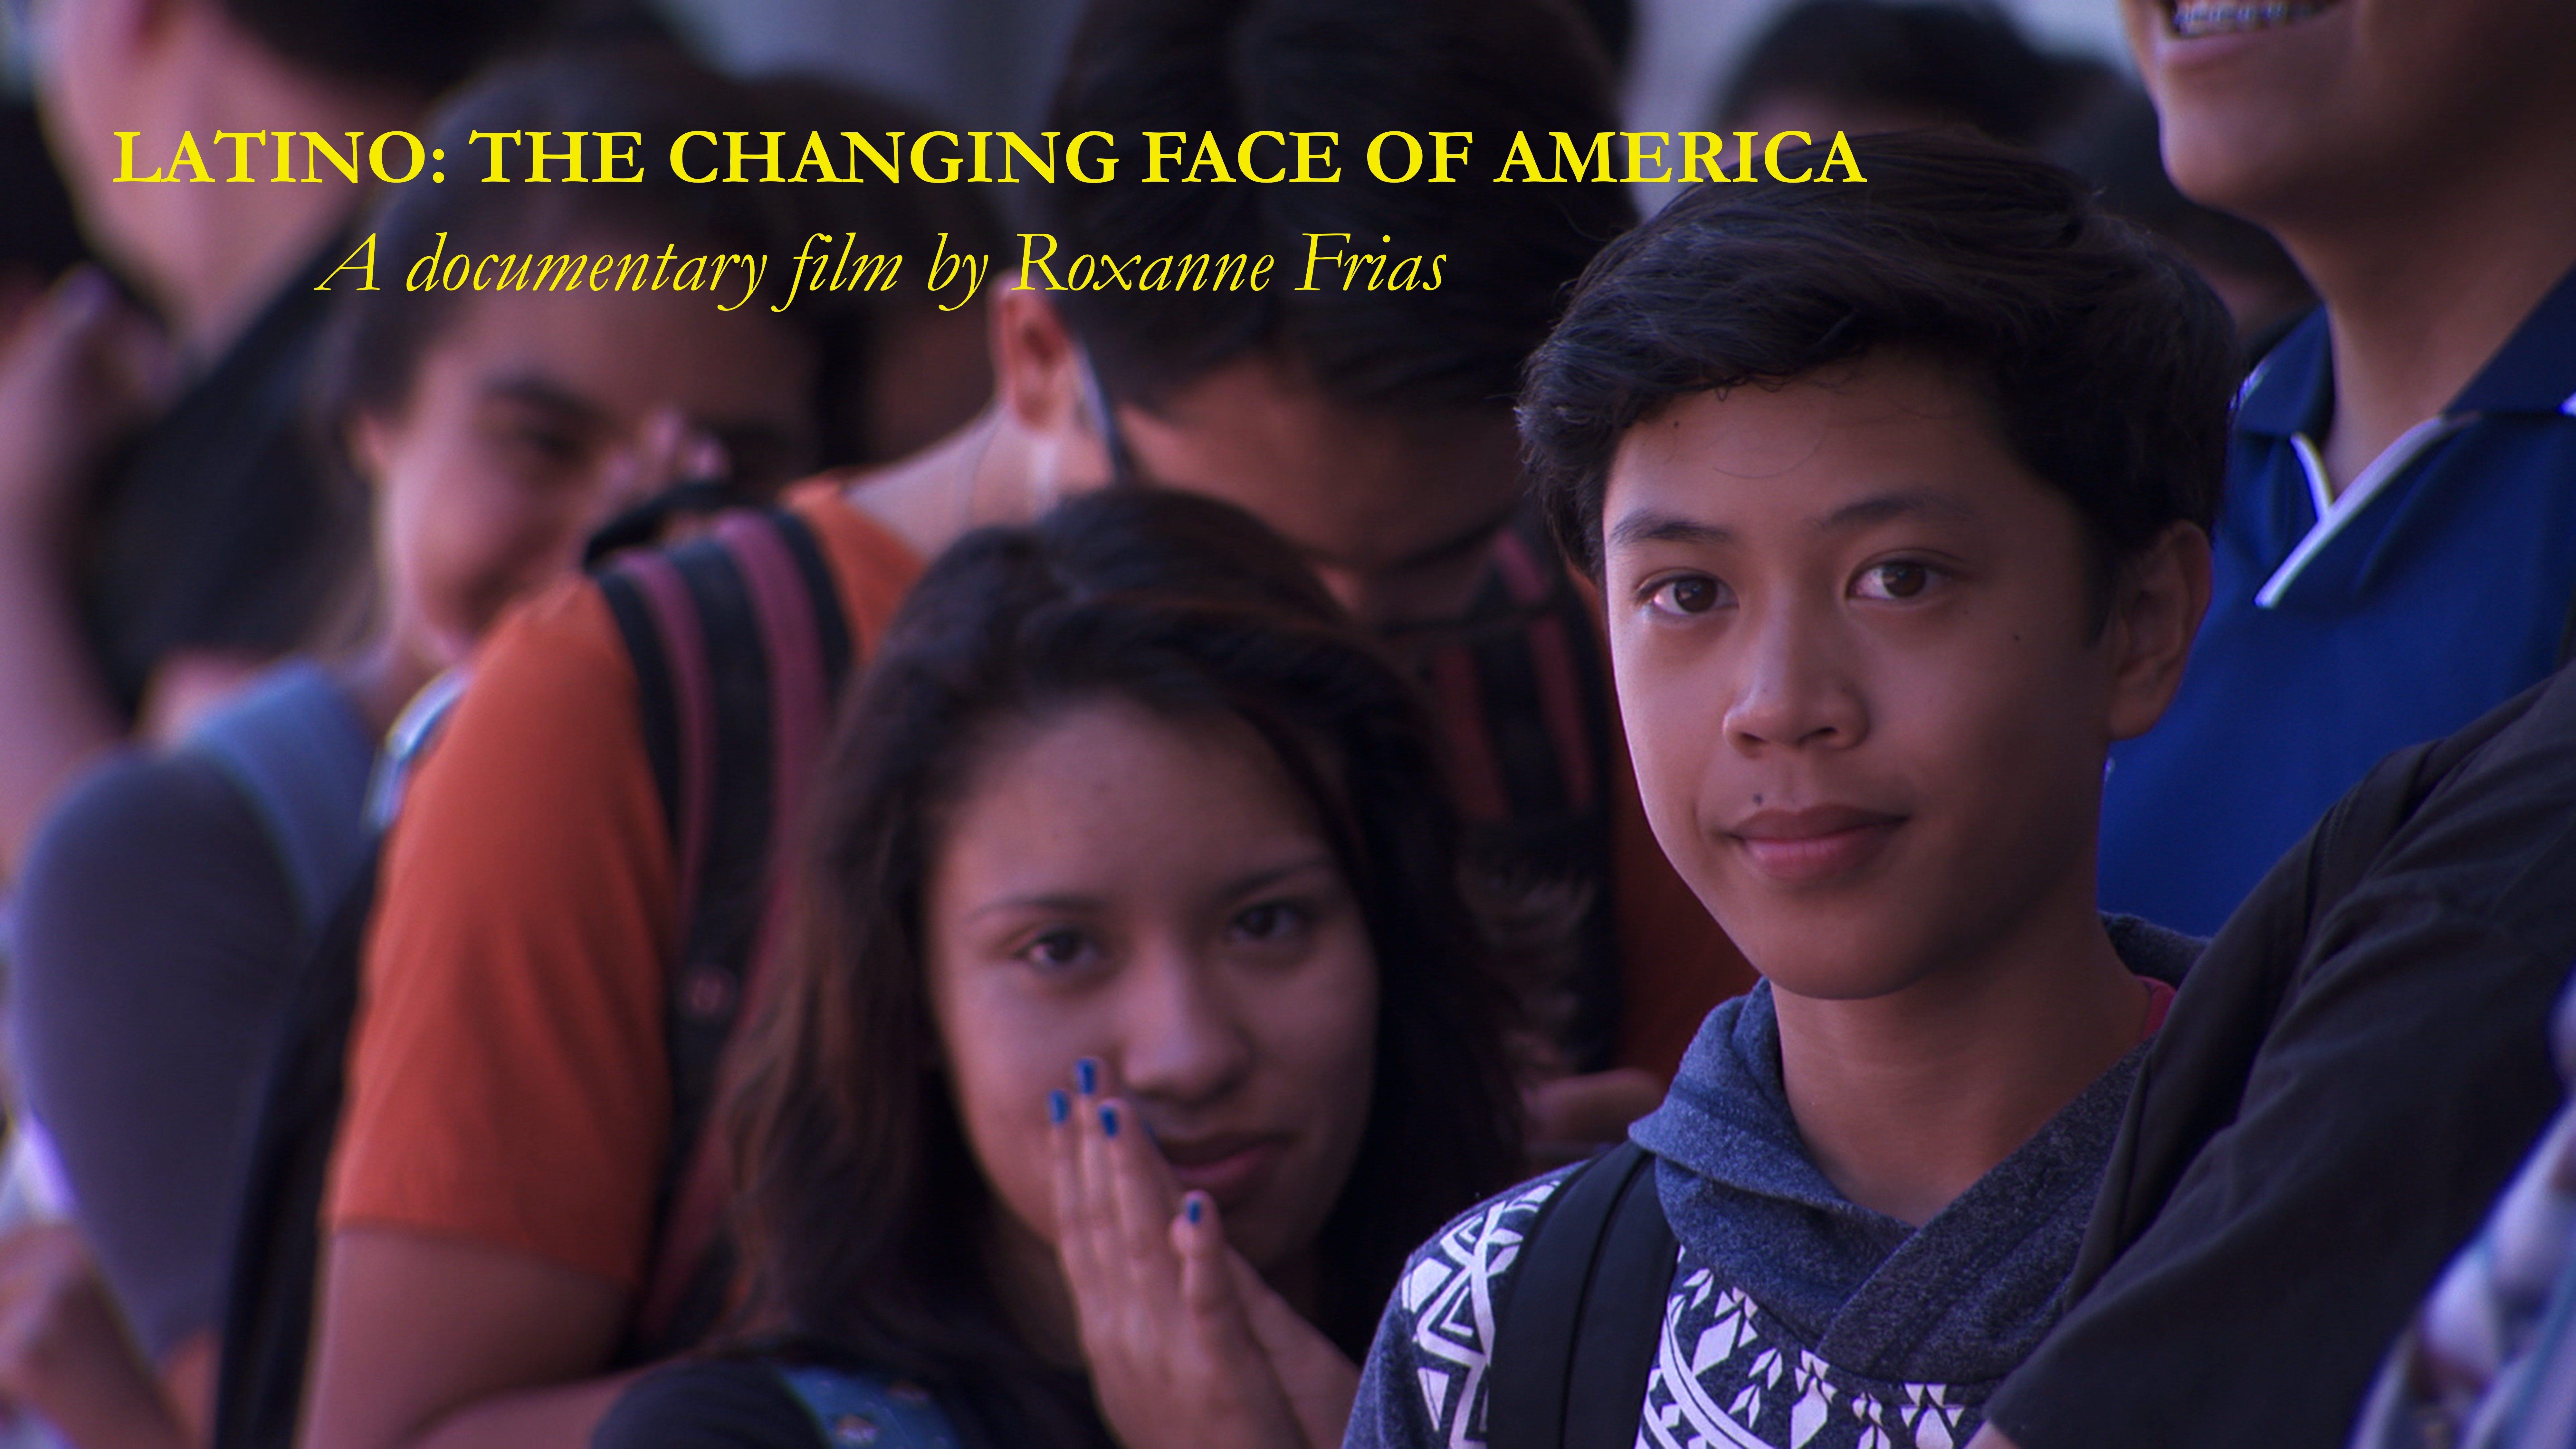 Projection « Latino, the changing face of America » le 10 janvier